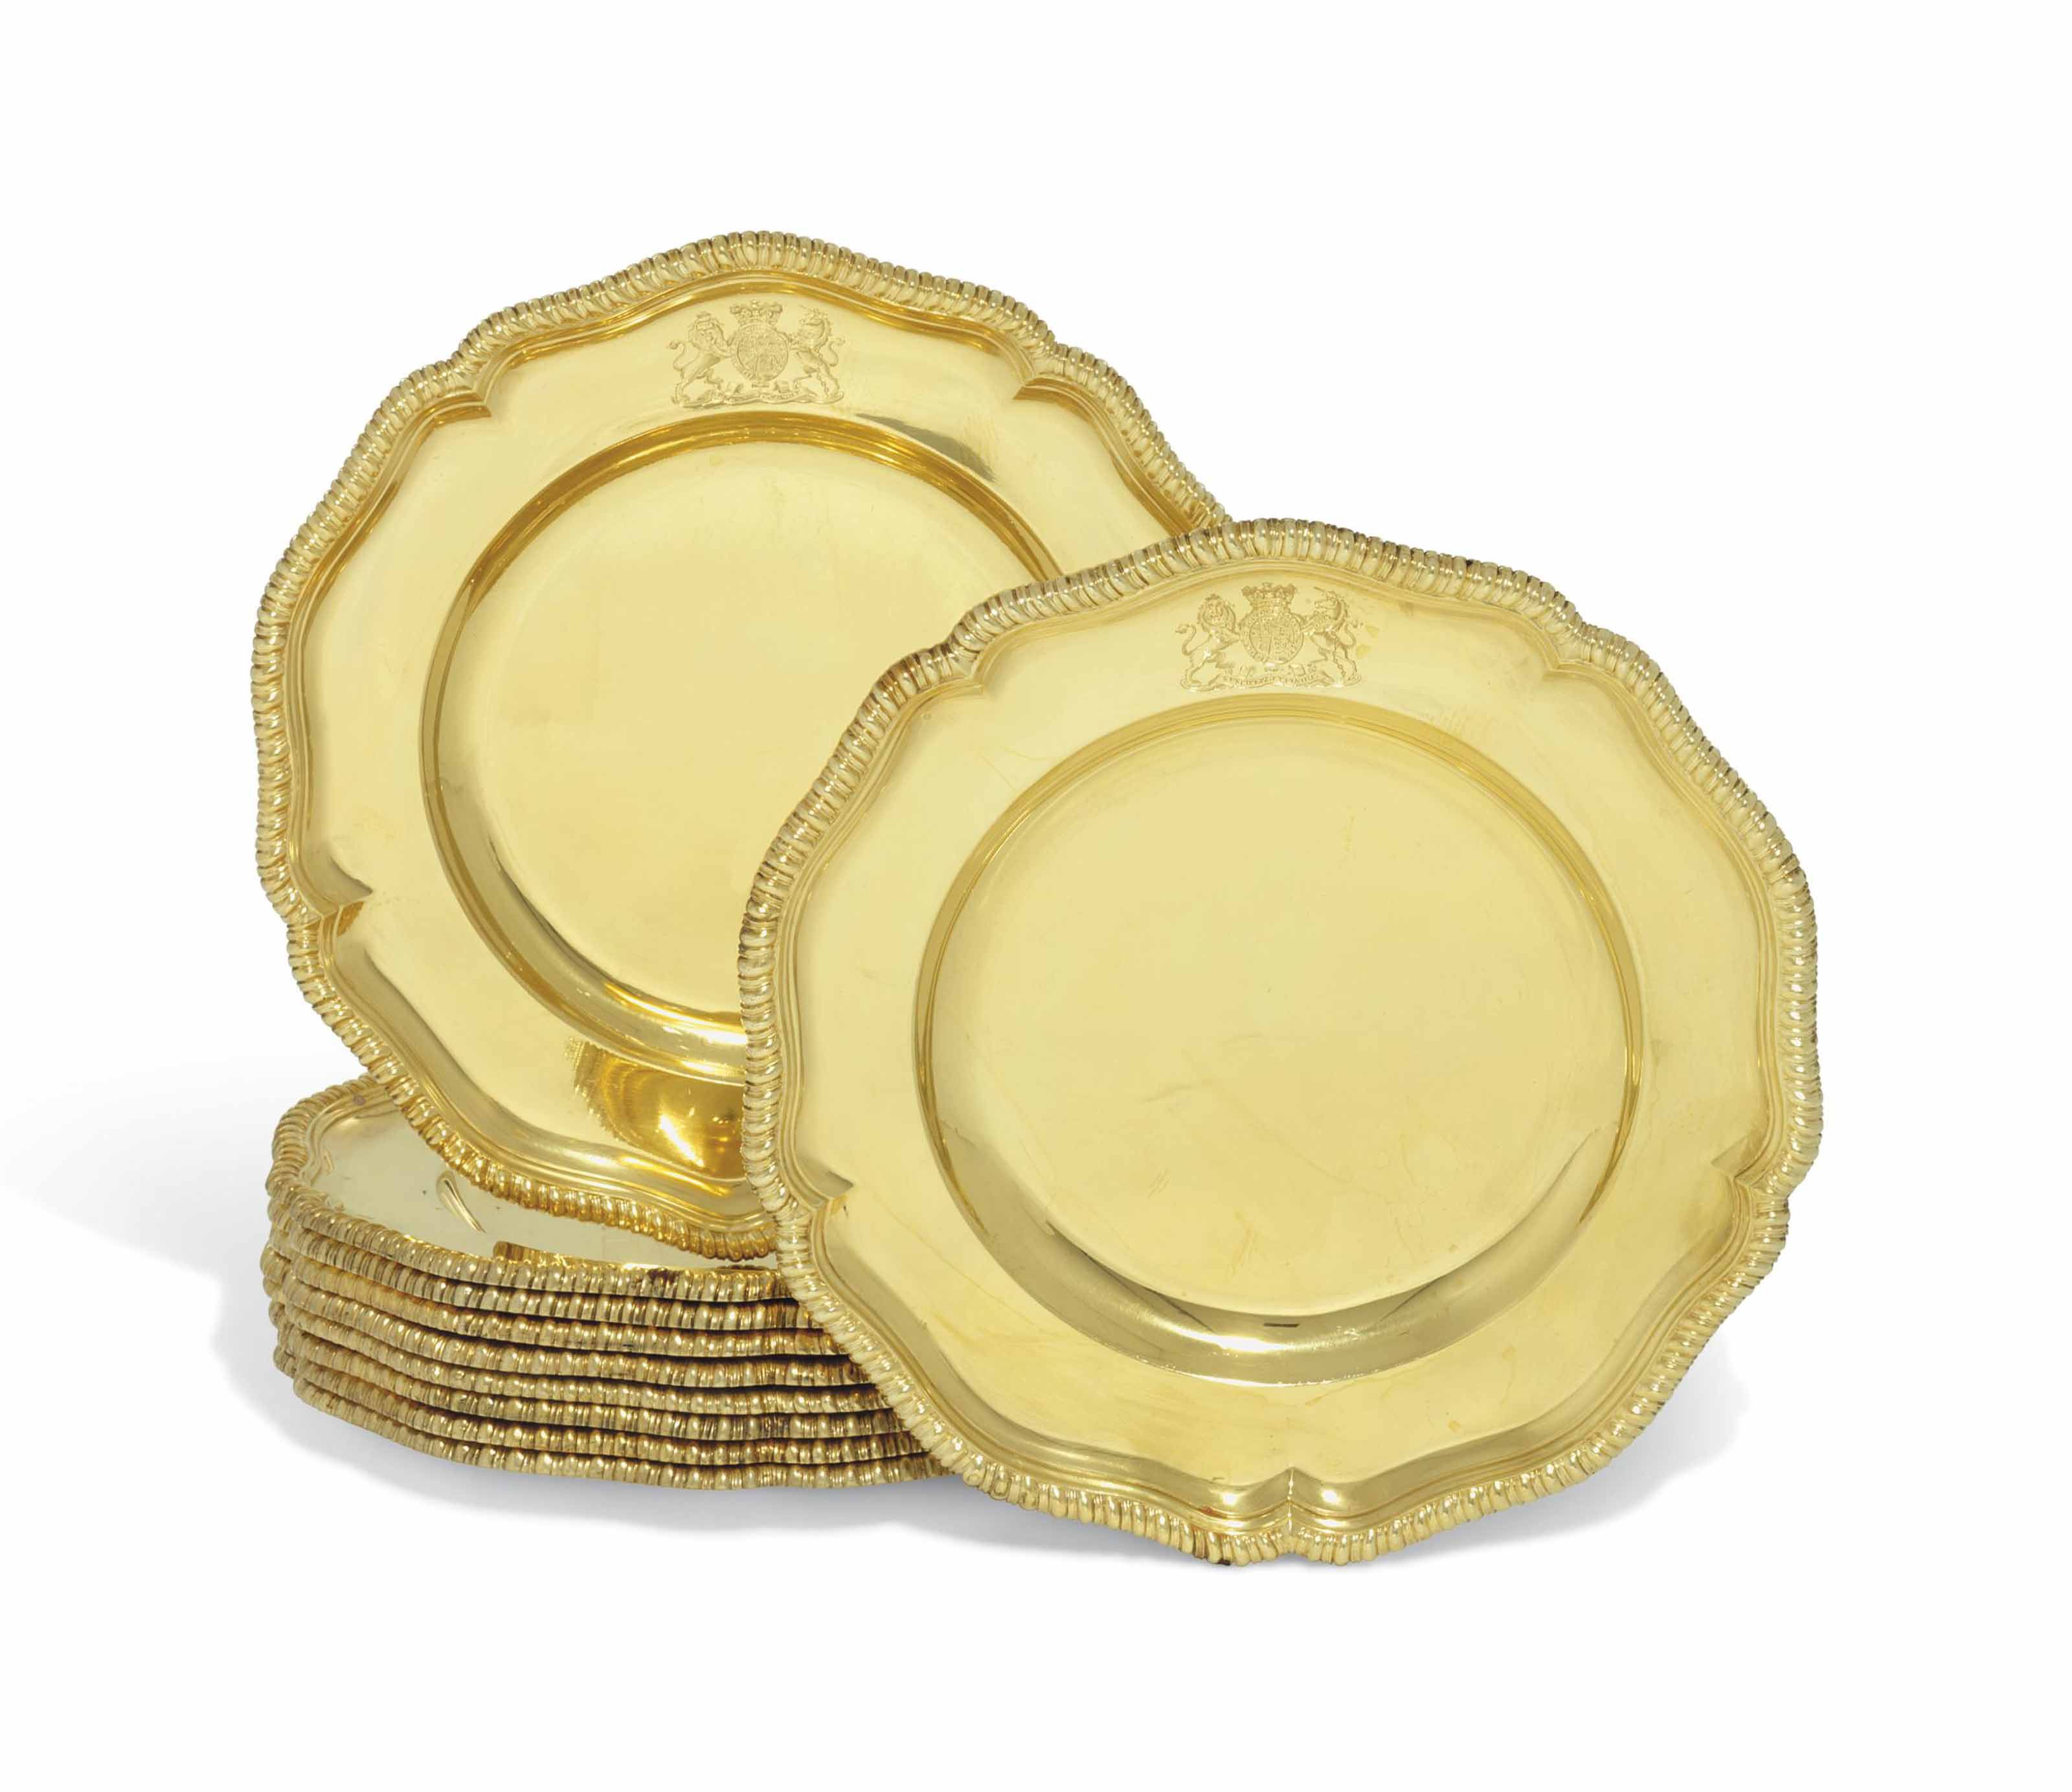 A SET OF TEN GEORGE III SILVER-GILT DINNER-PLATES FROM THE CUMBERLAND SERVICE